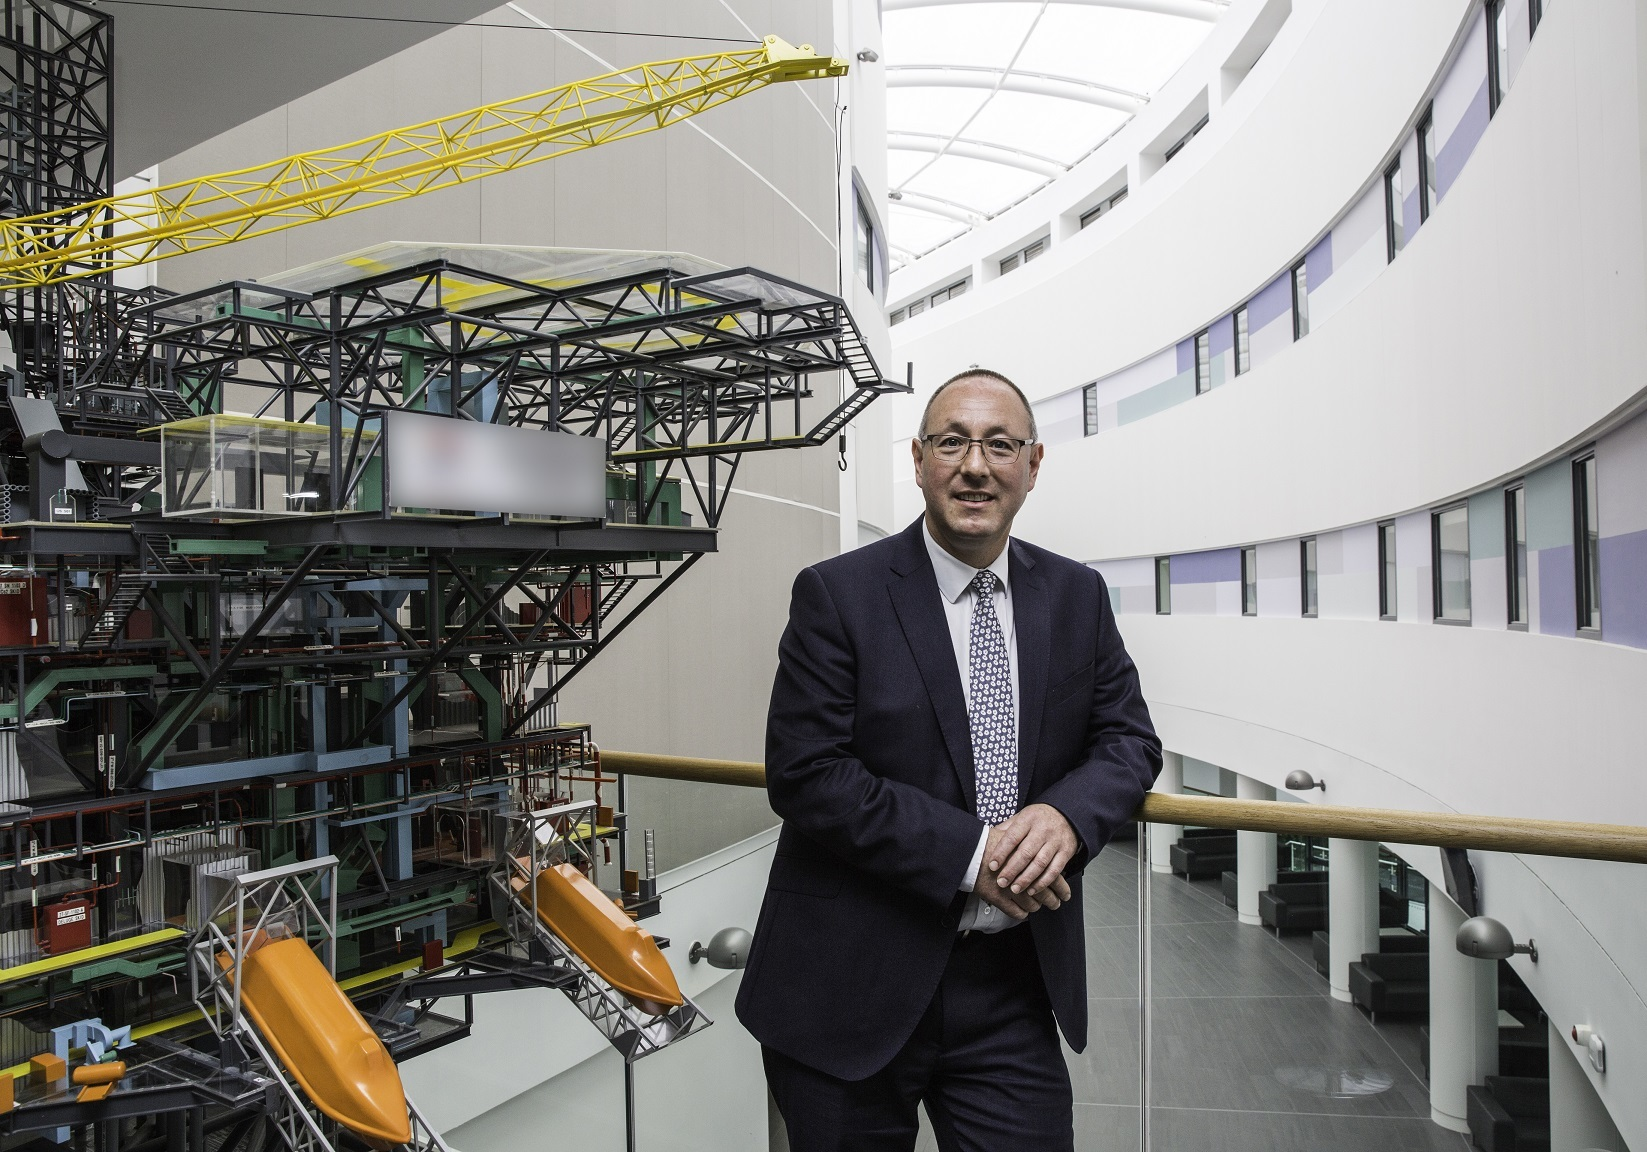 Professor Paul de Leeuw, director of RGU's oil and gas institute